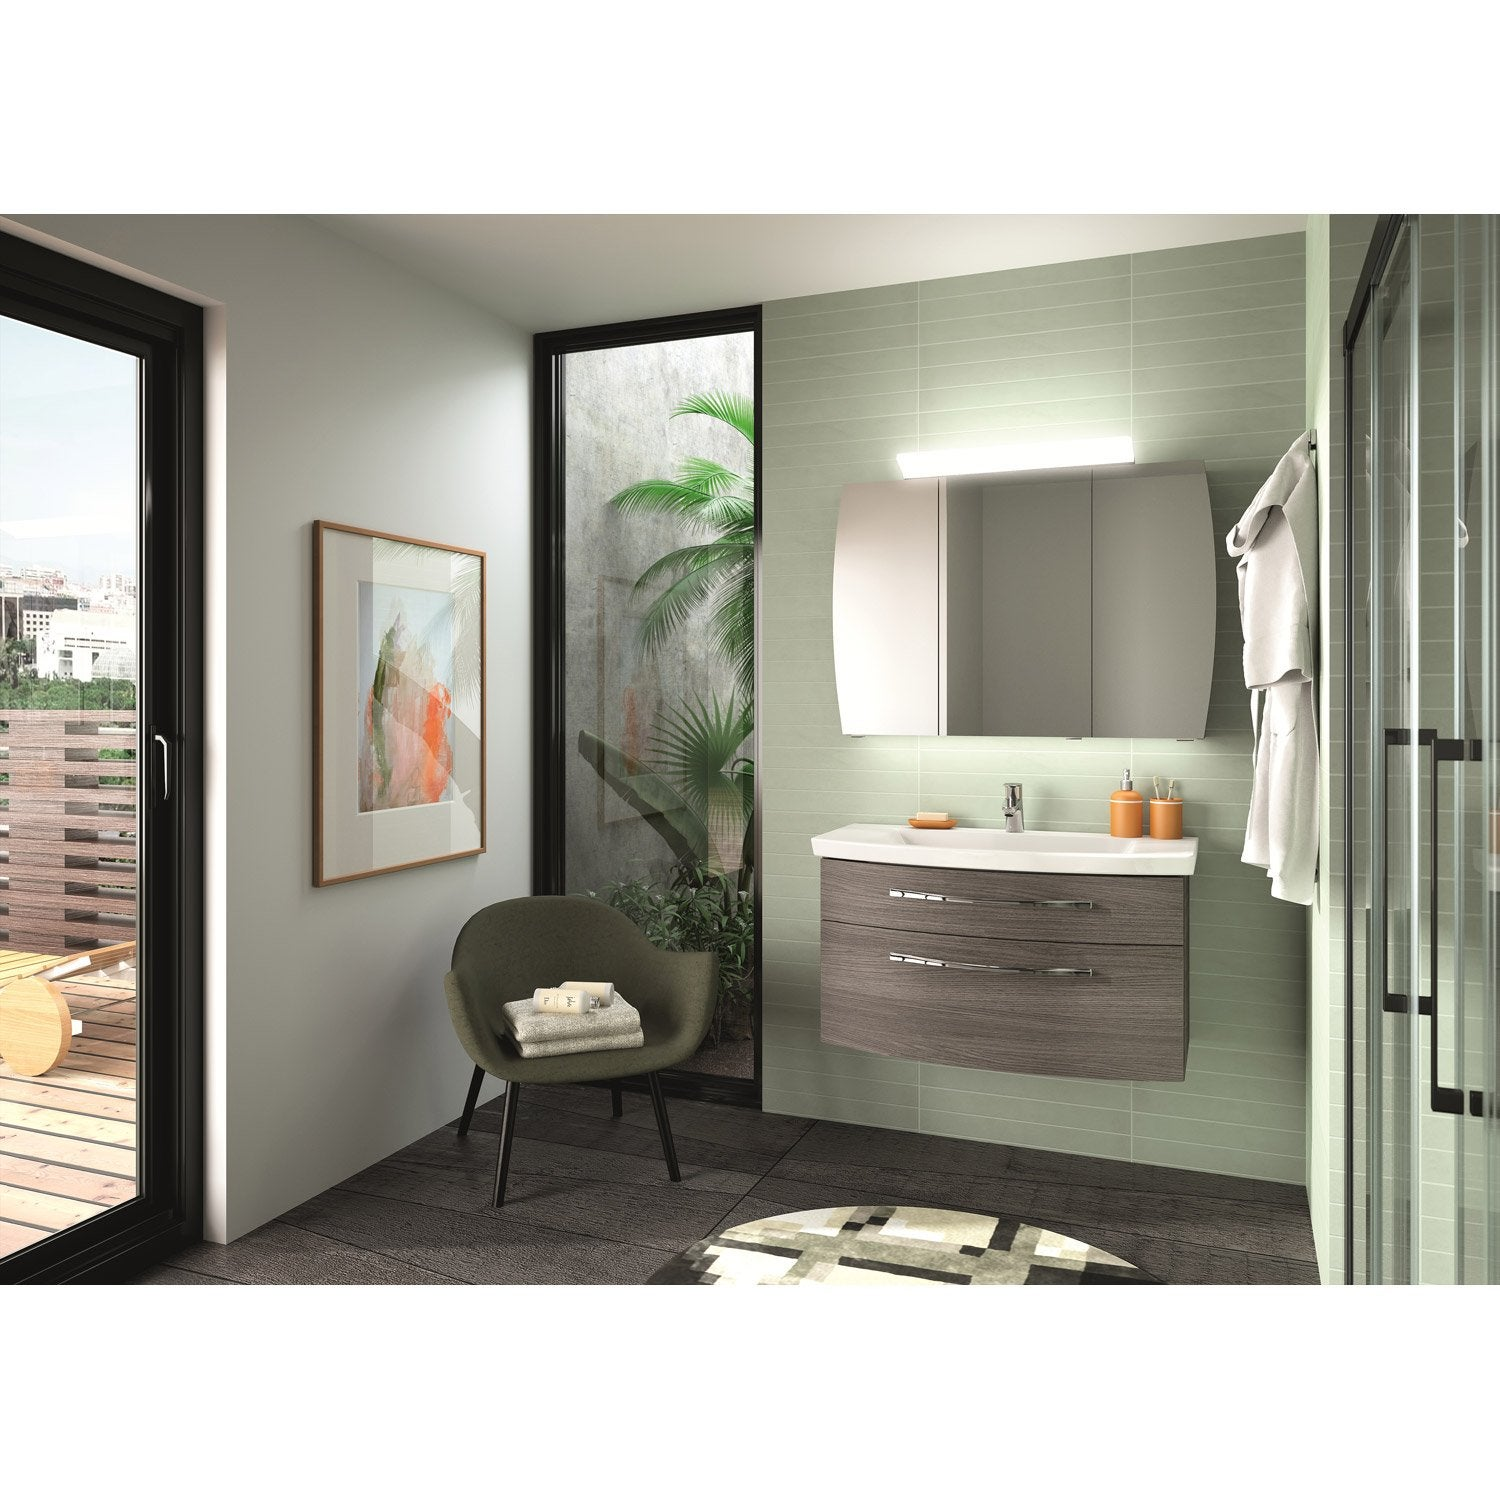 meuble de salle de bains de 80 99 gris argent image leroy merlin. Black Bedroom Furniture Sets. Home Design Ideas